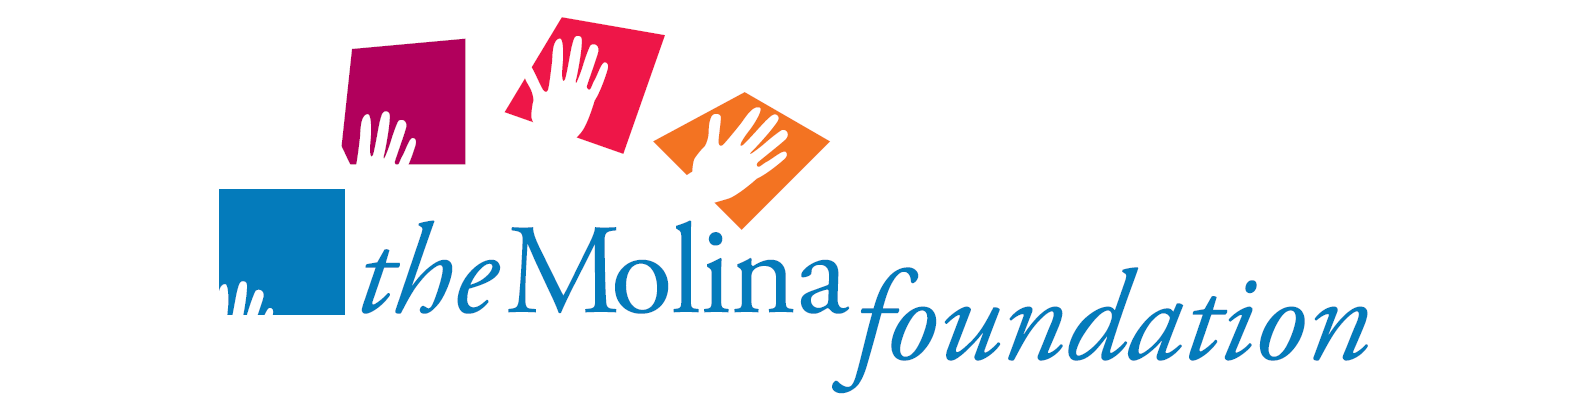 On 3/1/2016, Signal Hill Elementary School was awarded a grant of 552 new  children's books from The Molina Foundation